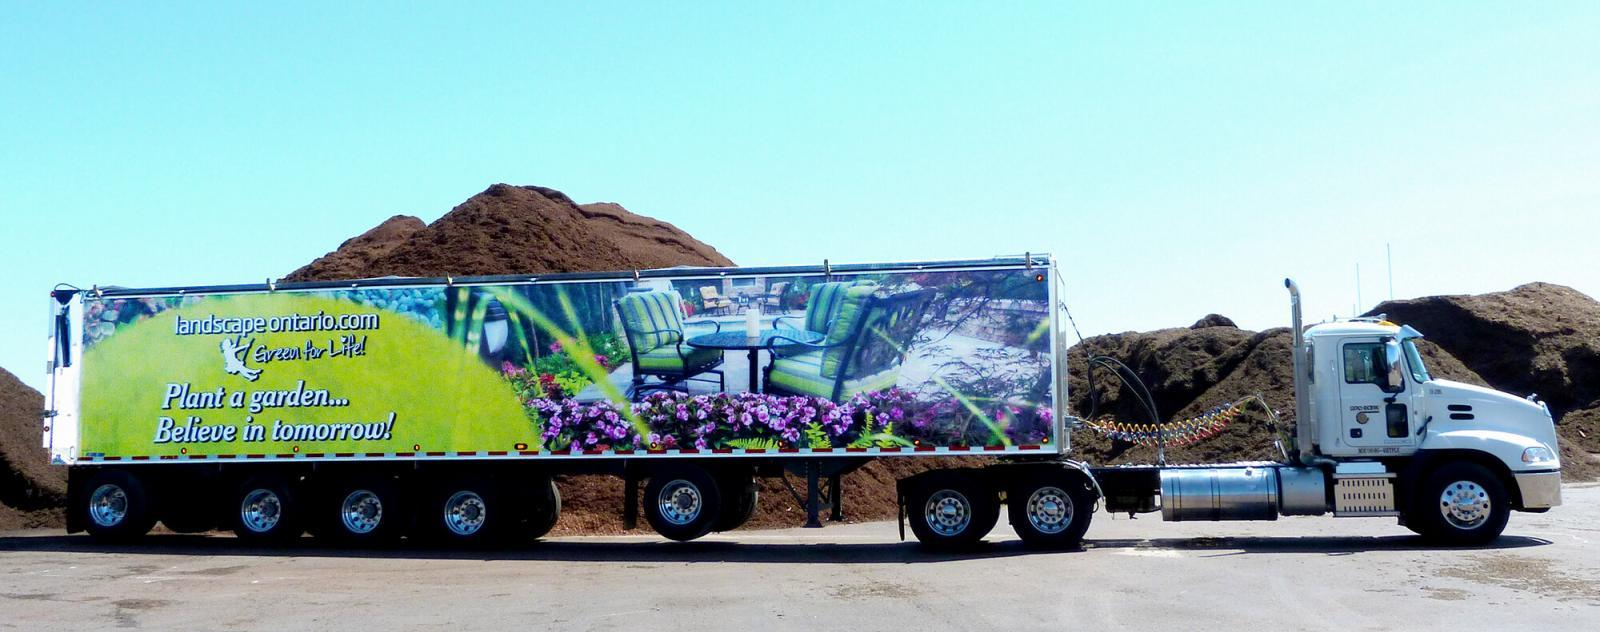 Gro-Bark shows its strong support for Landscape Ontario's Green for Life branding with this transport trailer rolling along Ontario highways.